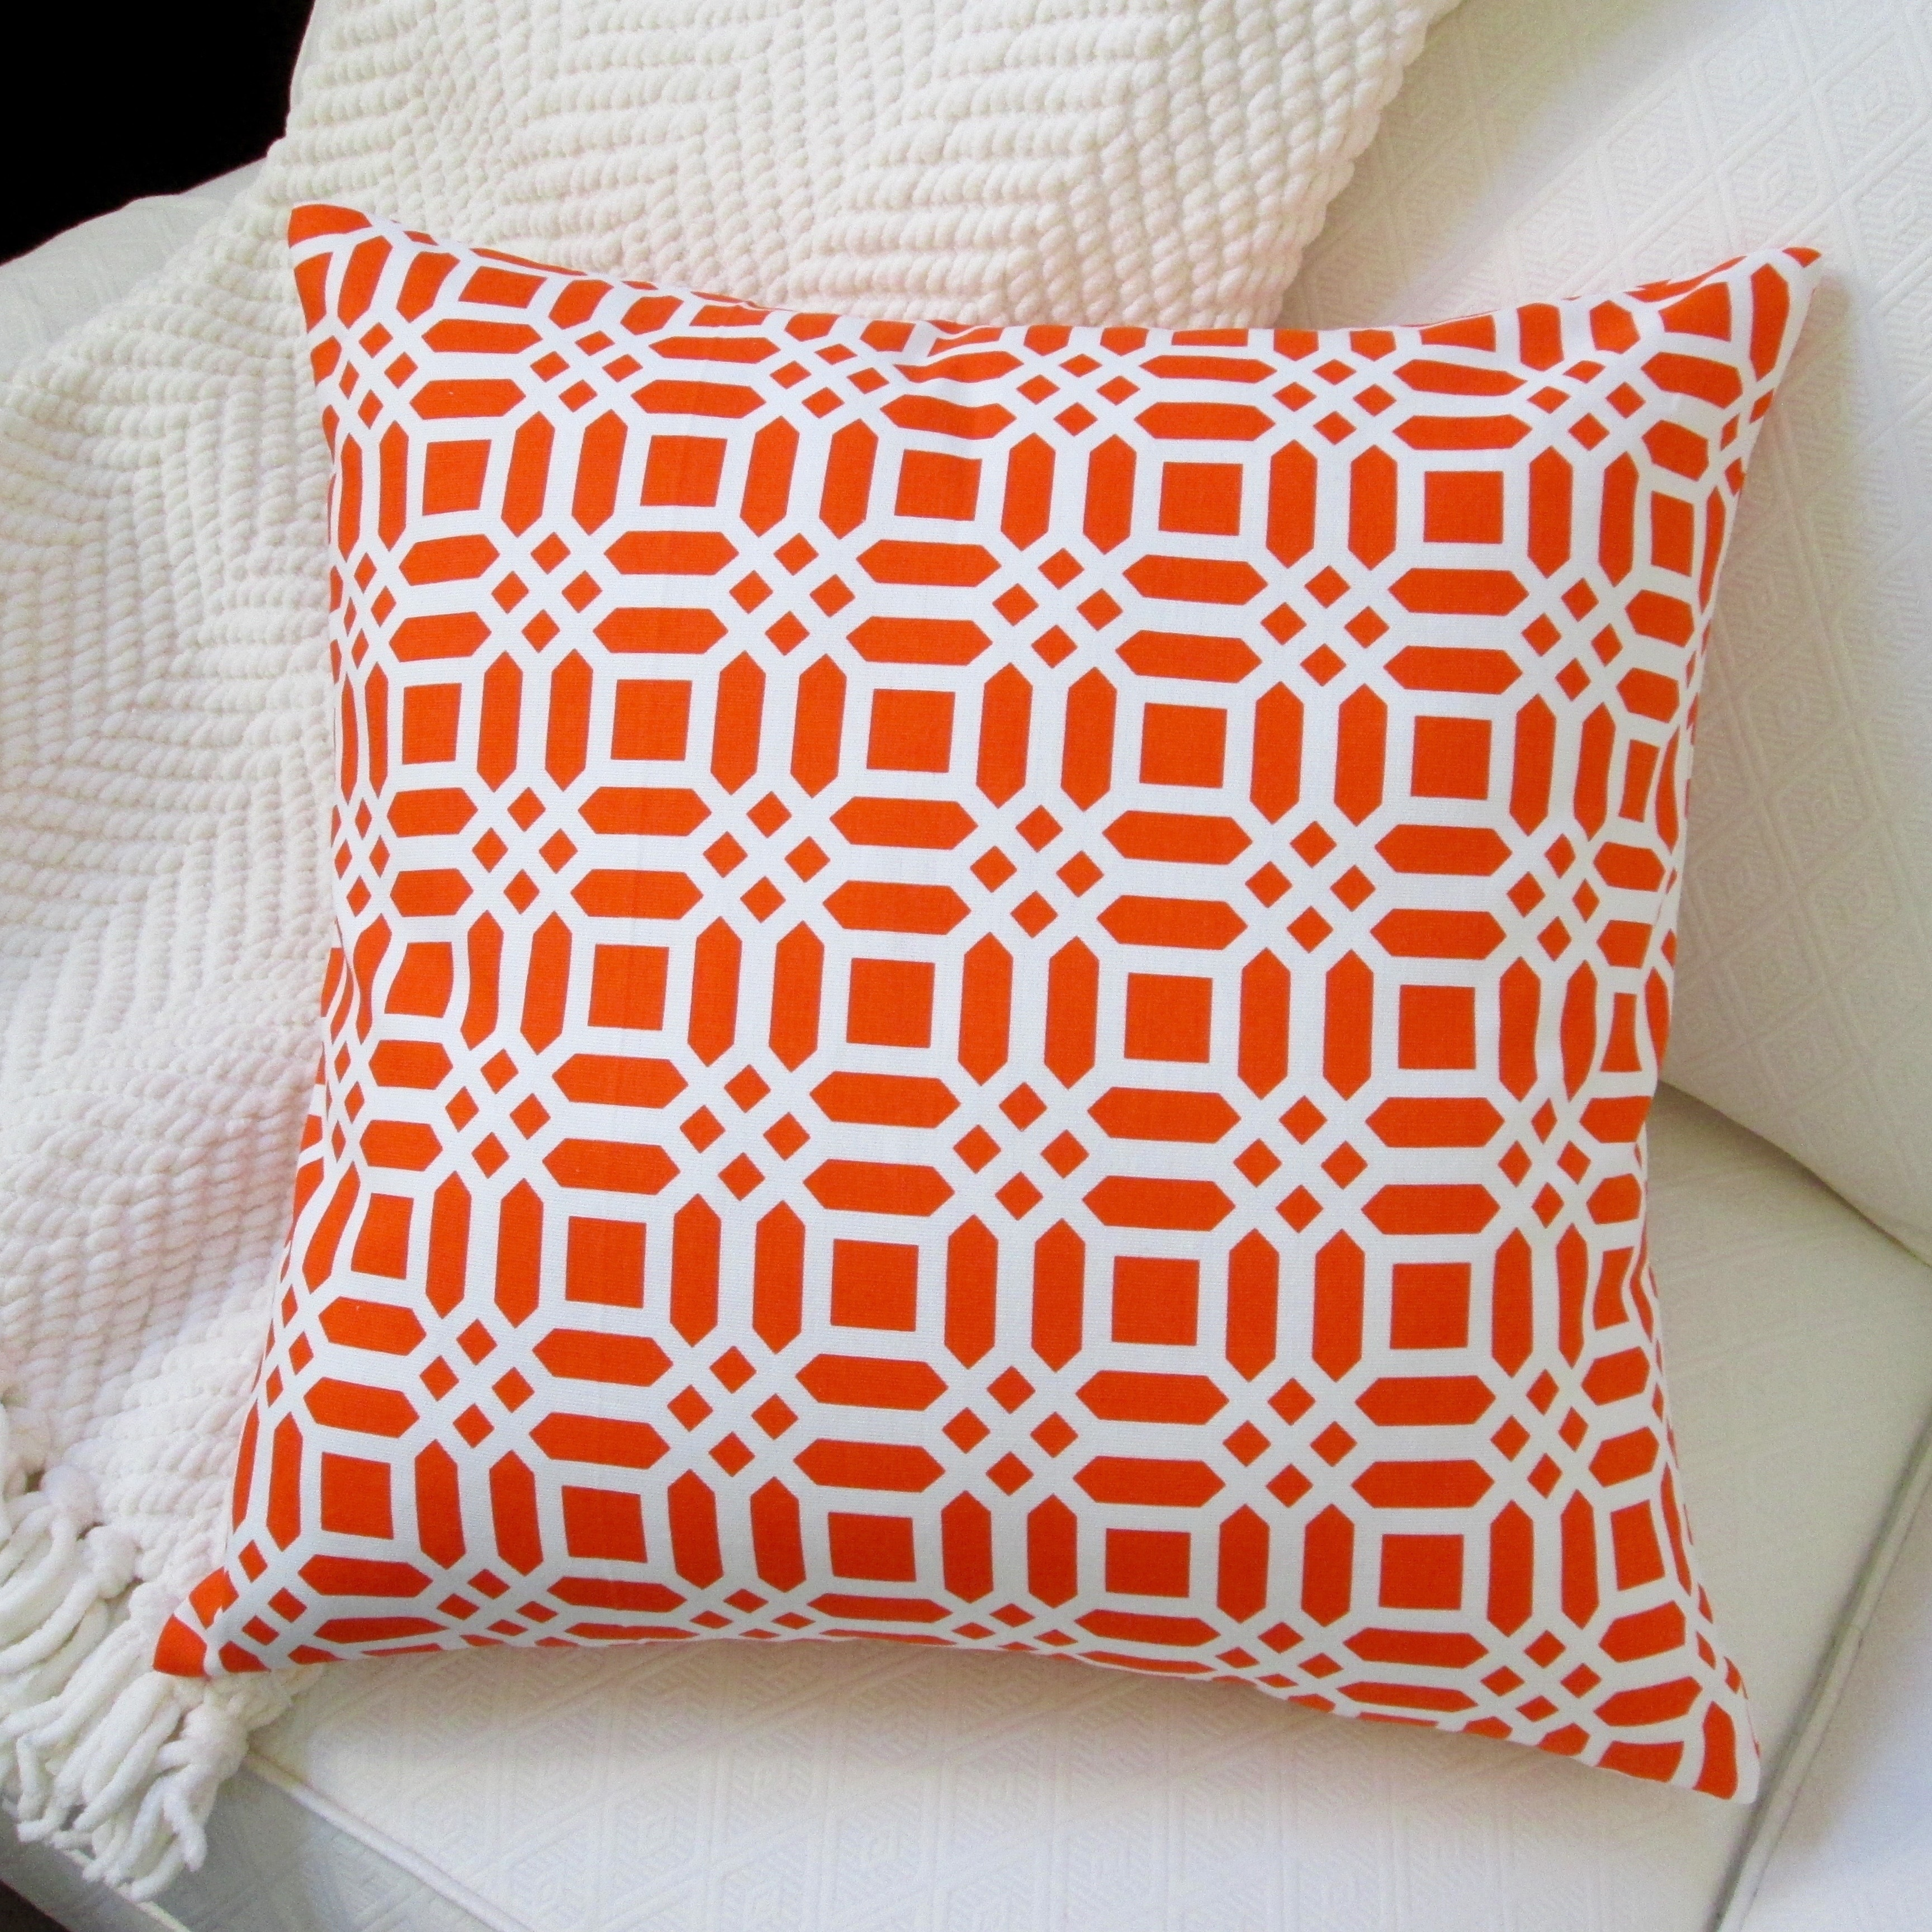 Orange Pillow Covers Throw Pillows Online At Our Best Decorative Accessories Deals